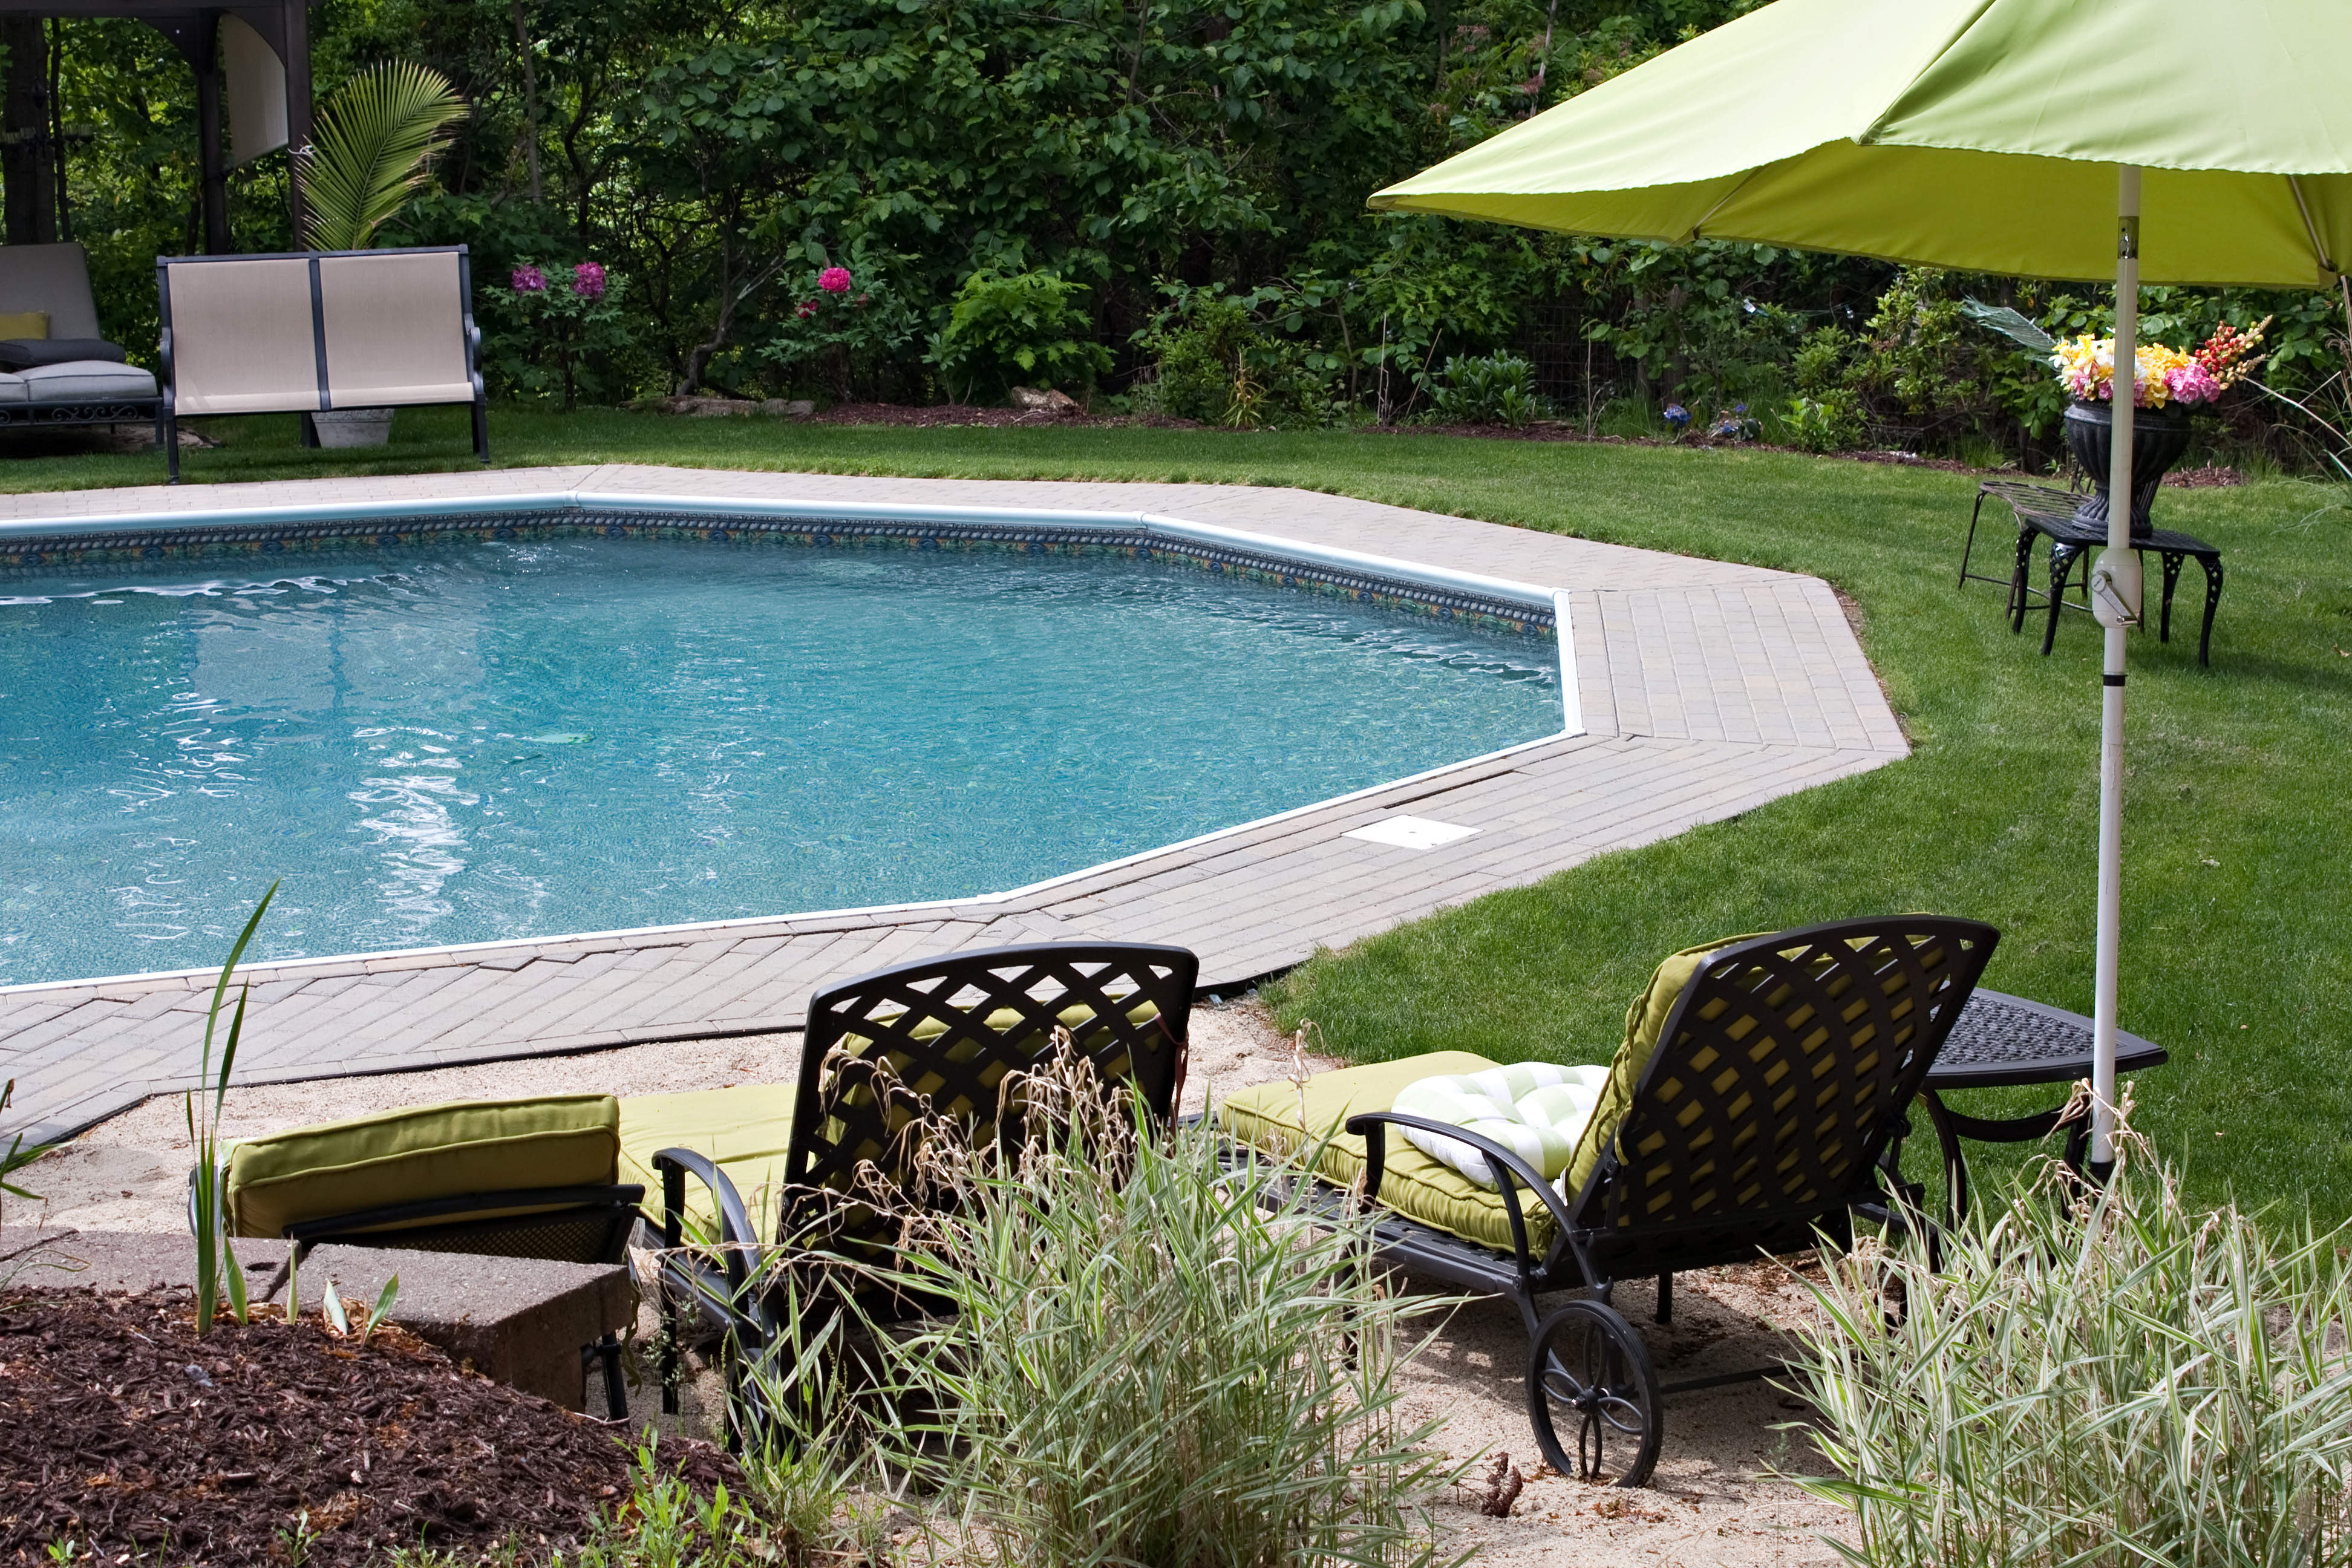 how much does a pool increase home value, does a pool add value to a home appraisal, does a swimming pool devalue a house, does an inground pool increase property taxes, raise value